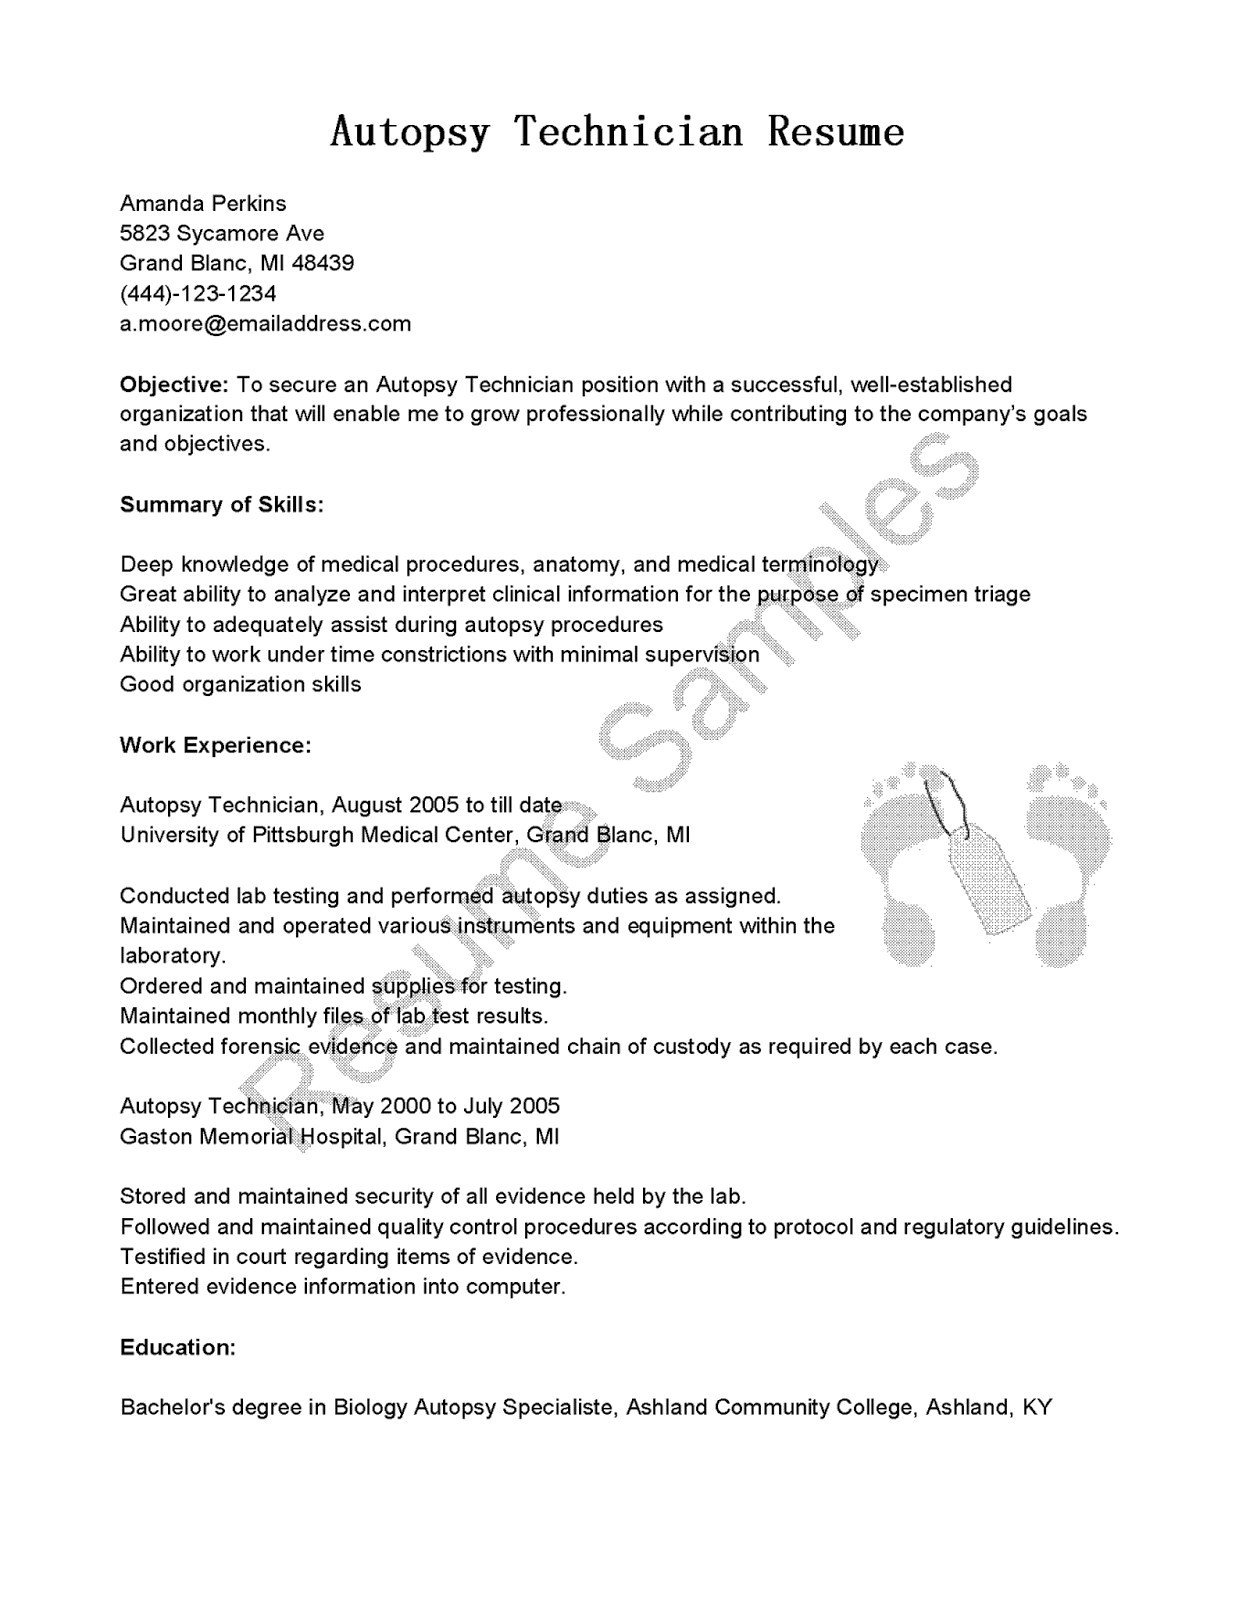 Resume for College Applications - College Admissions Resume Template Refrence Job Application Resume